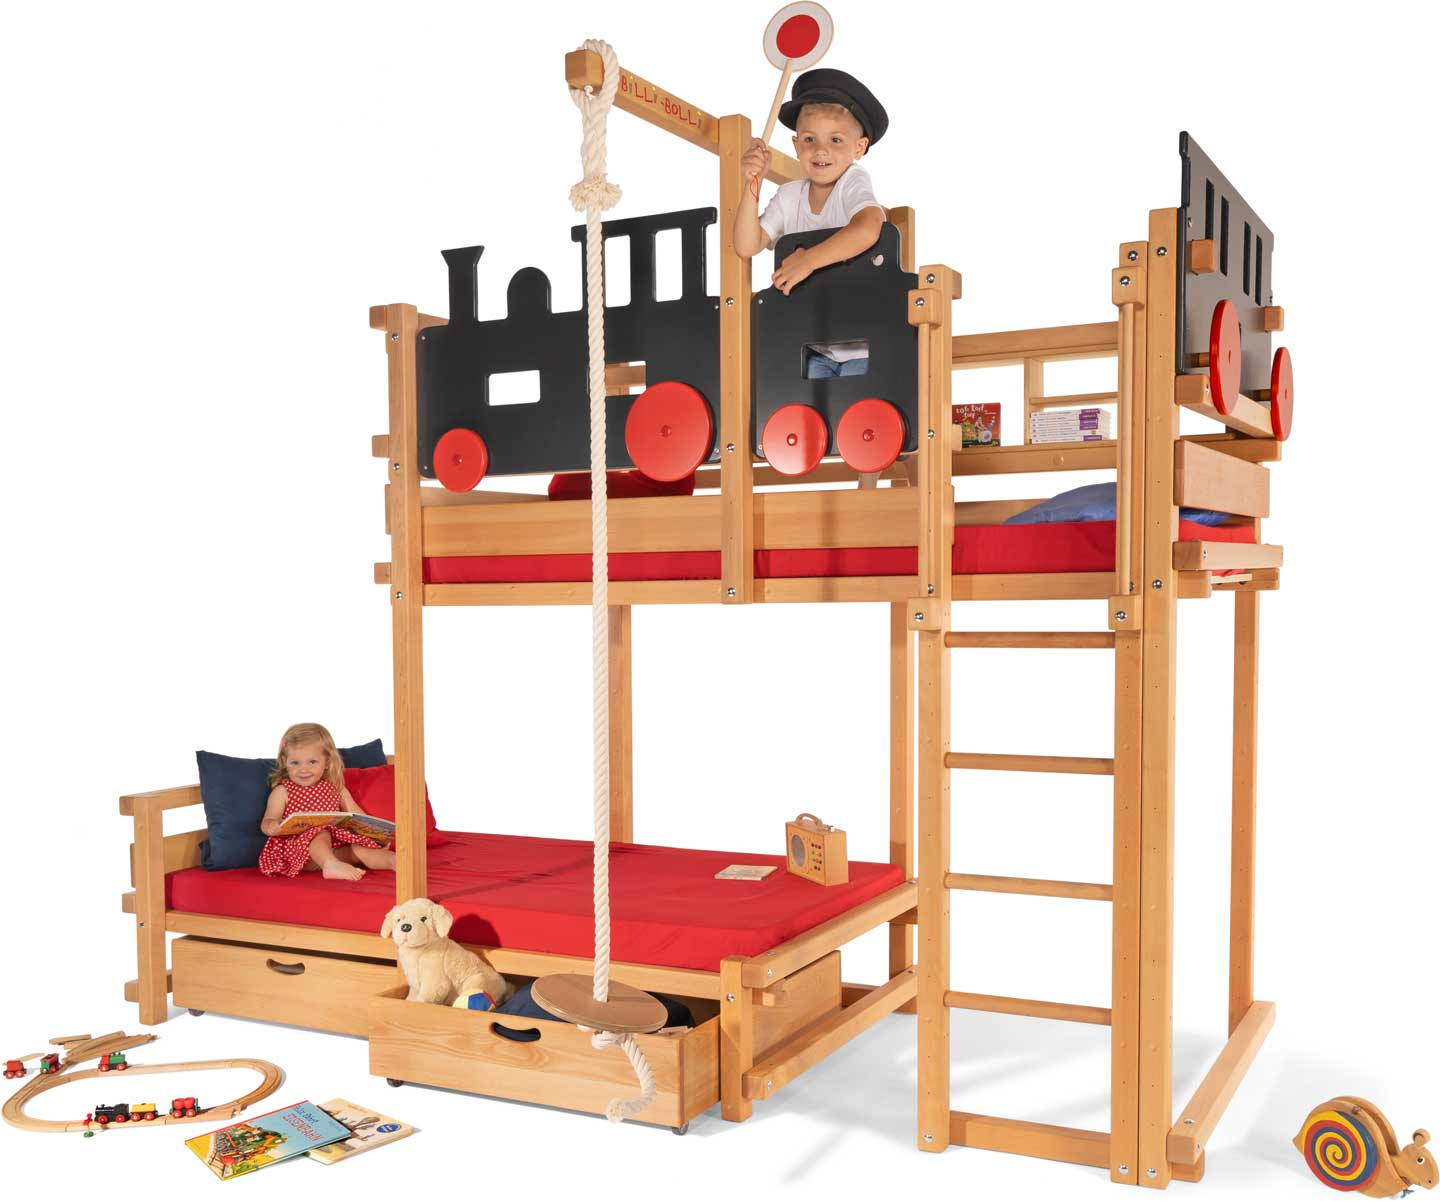 Image of: Bunk Bed Laterally Staggered Buy Online Billi Bolli